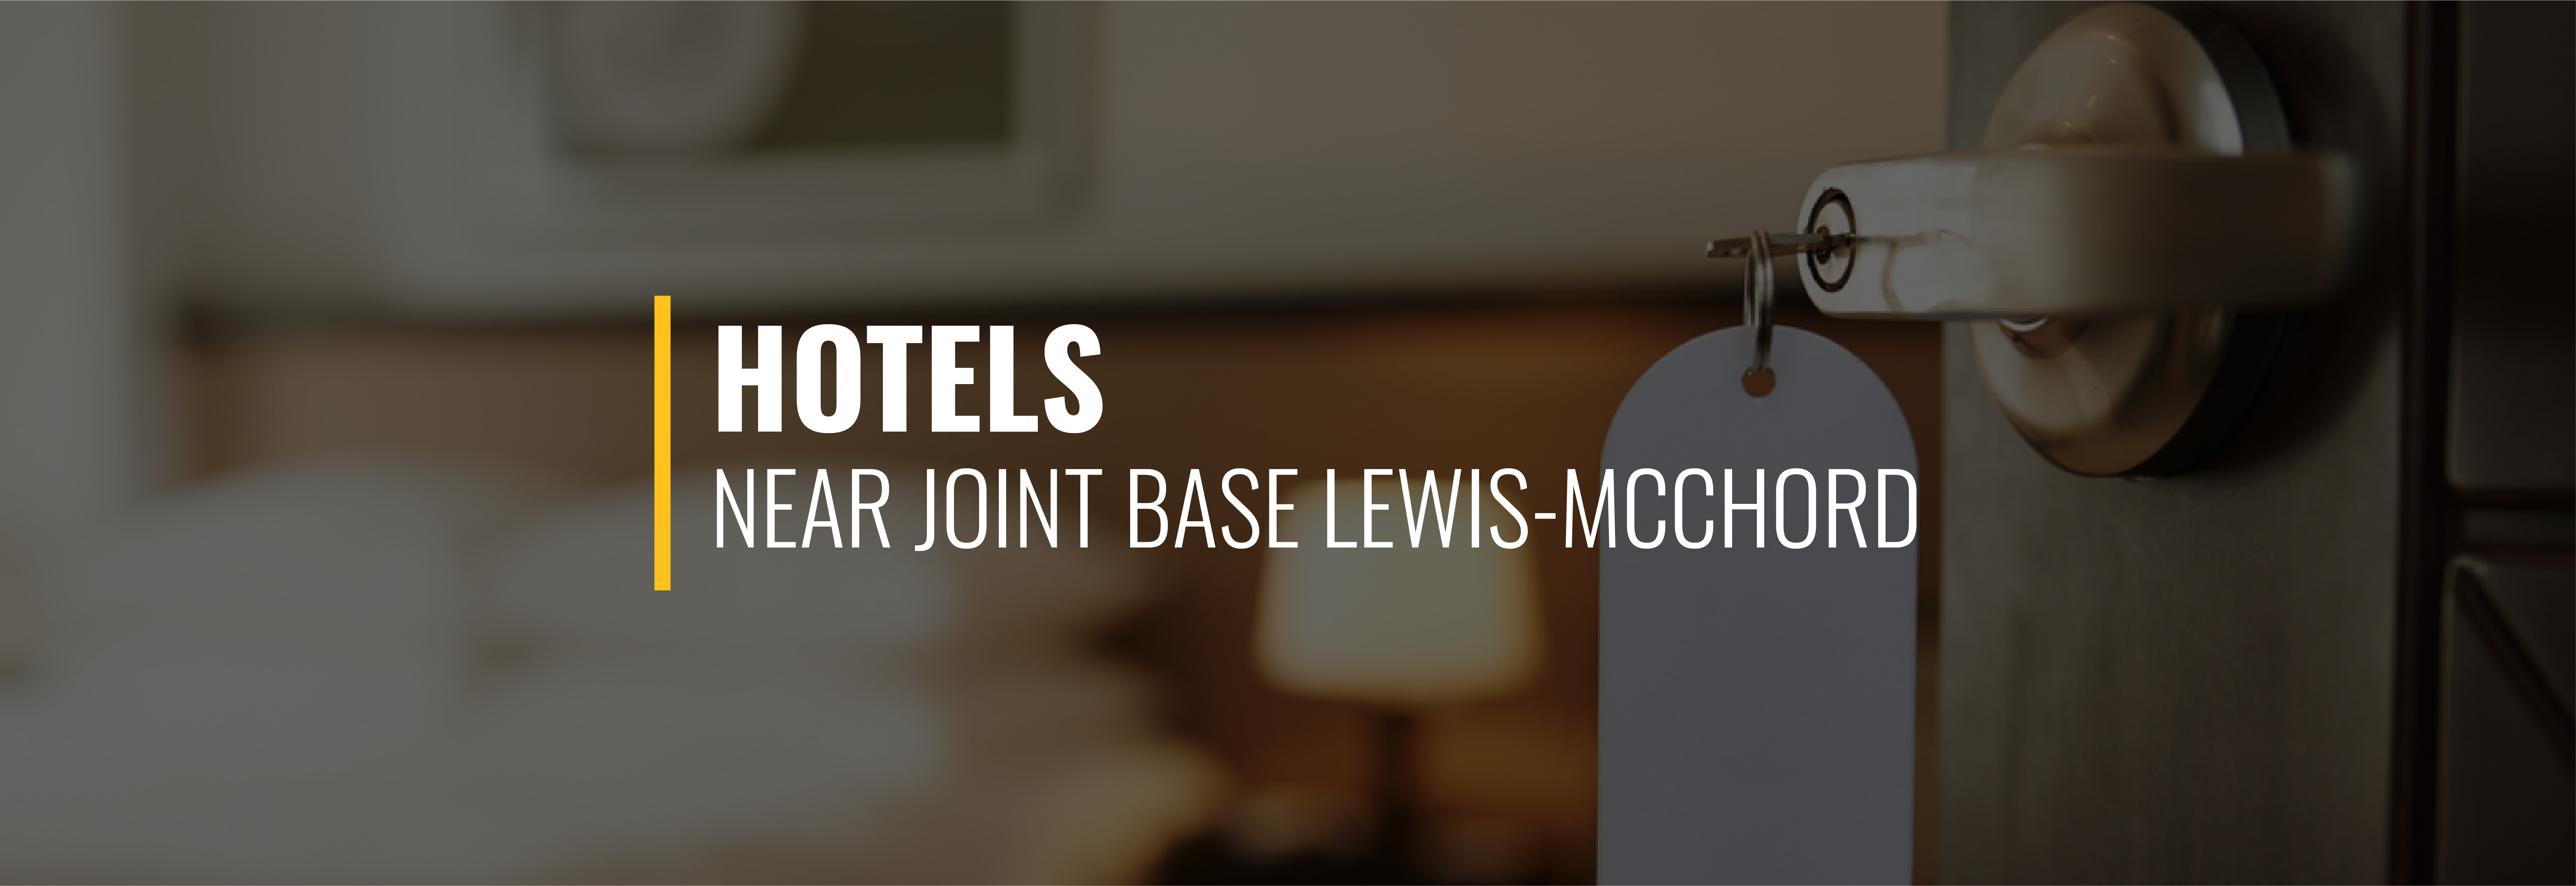 Joint Base Lewis-McChord Hotels